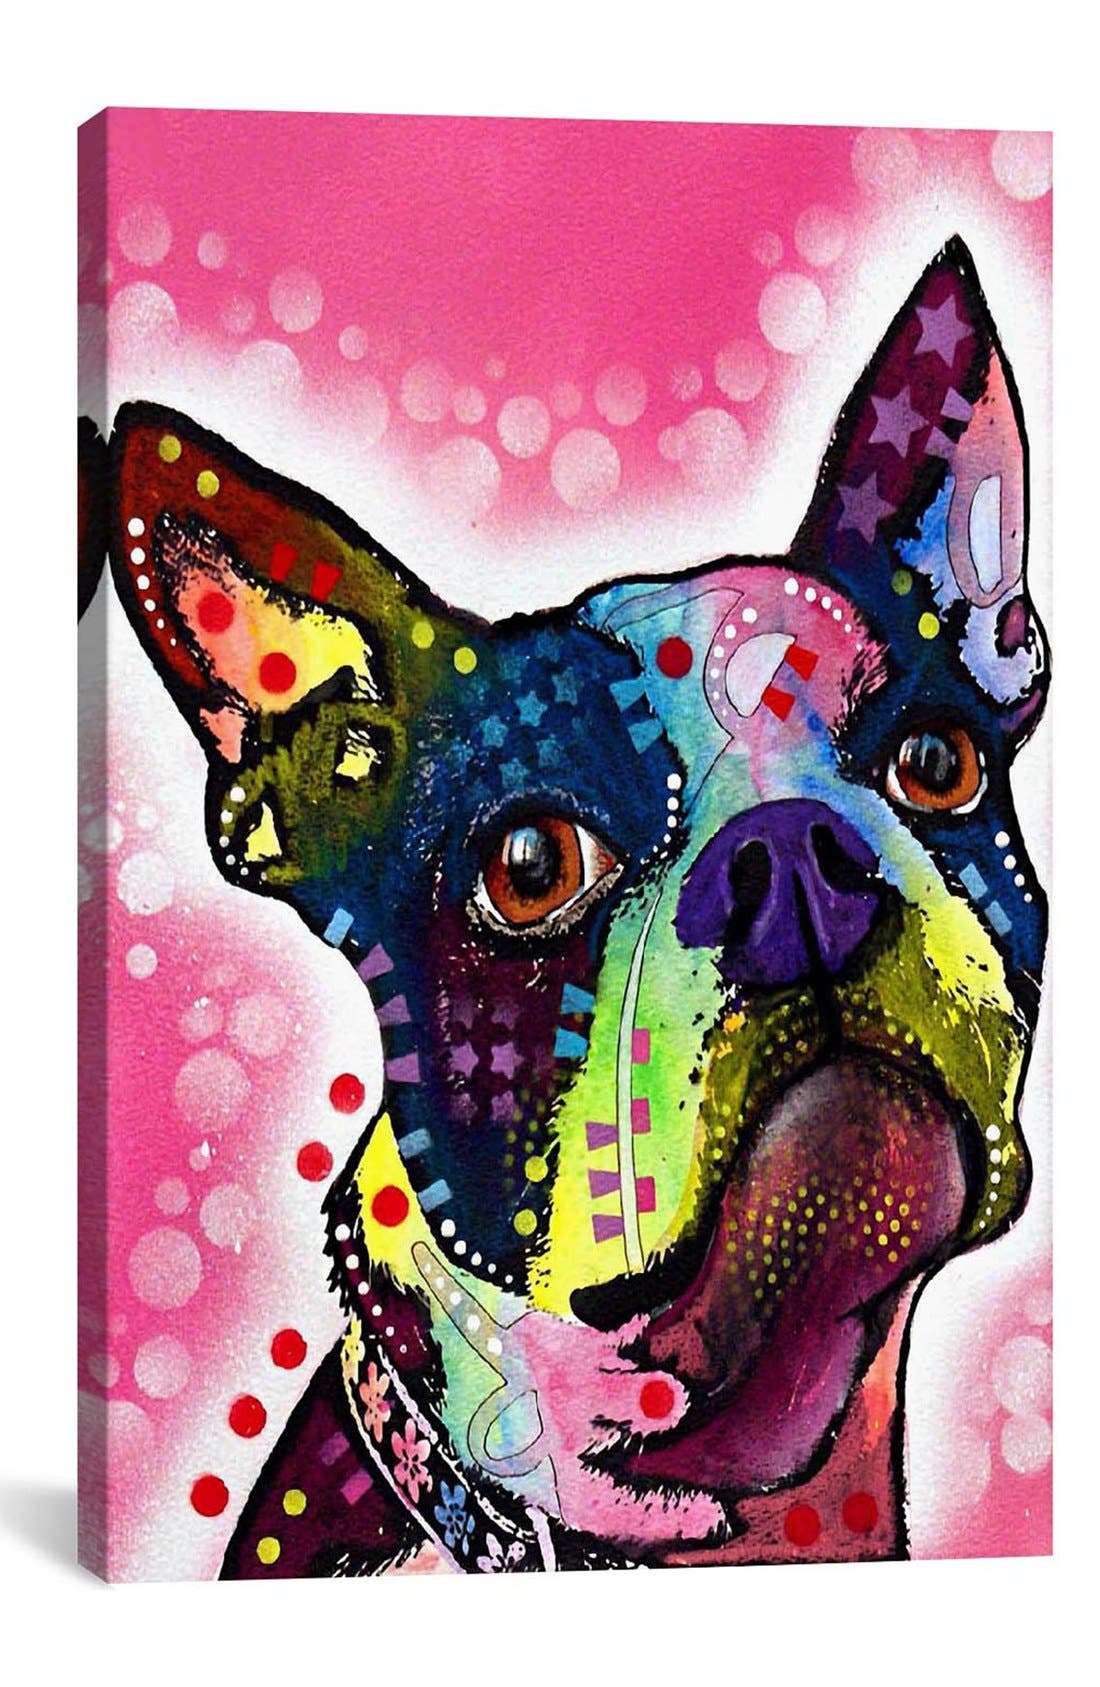 Main Image - iCanvas 'Boston Terrier - Dean Russo' Giclée Print Canvas Art